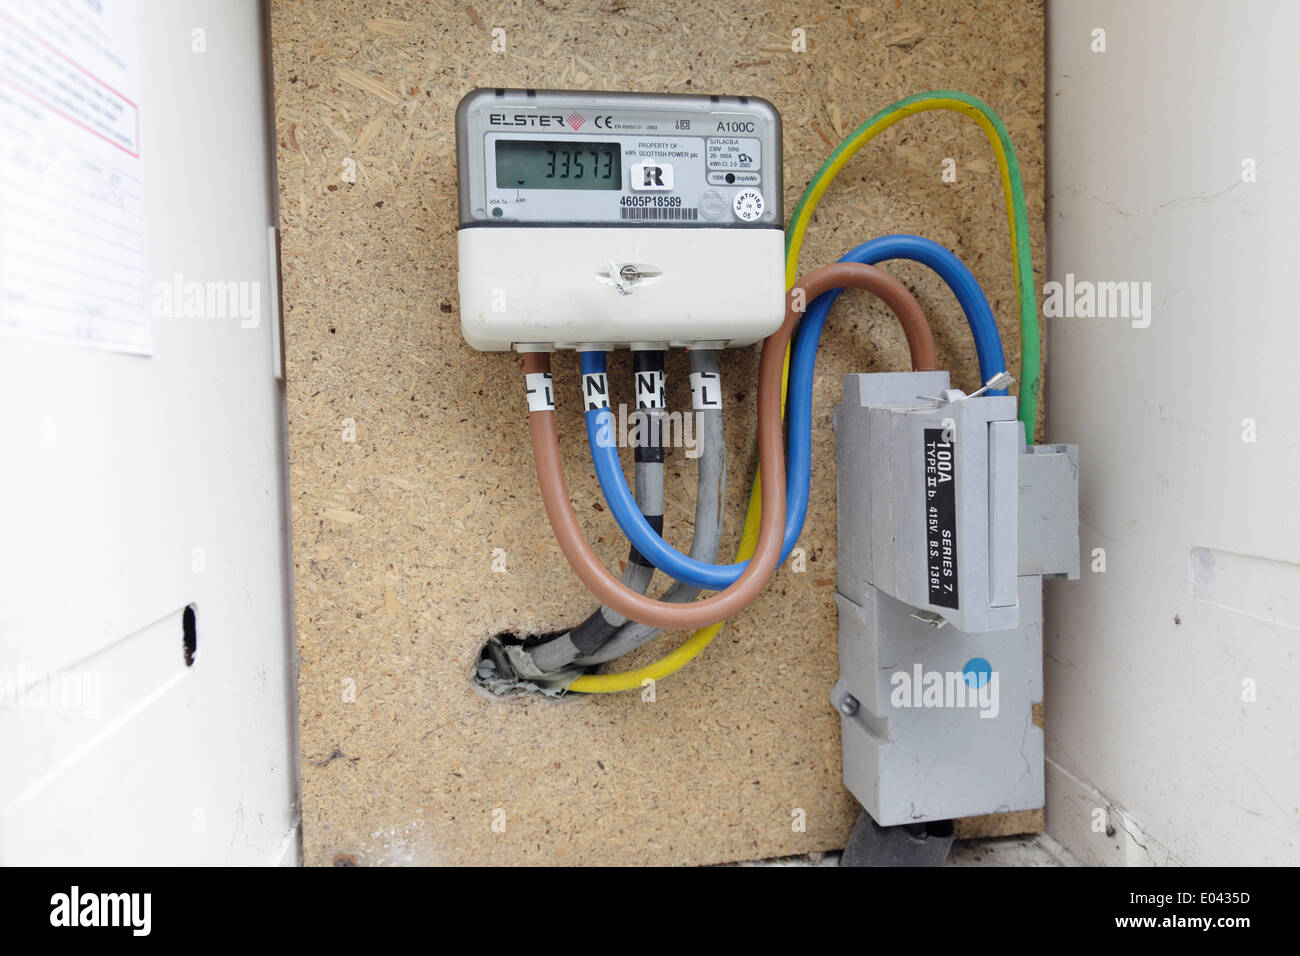 fuse box household stock photos fuse box household stock images rh alamy  com outside fuse boxes outside outlet fuse box